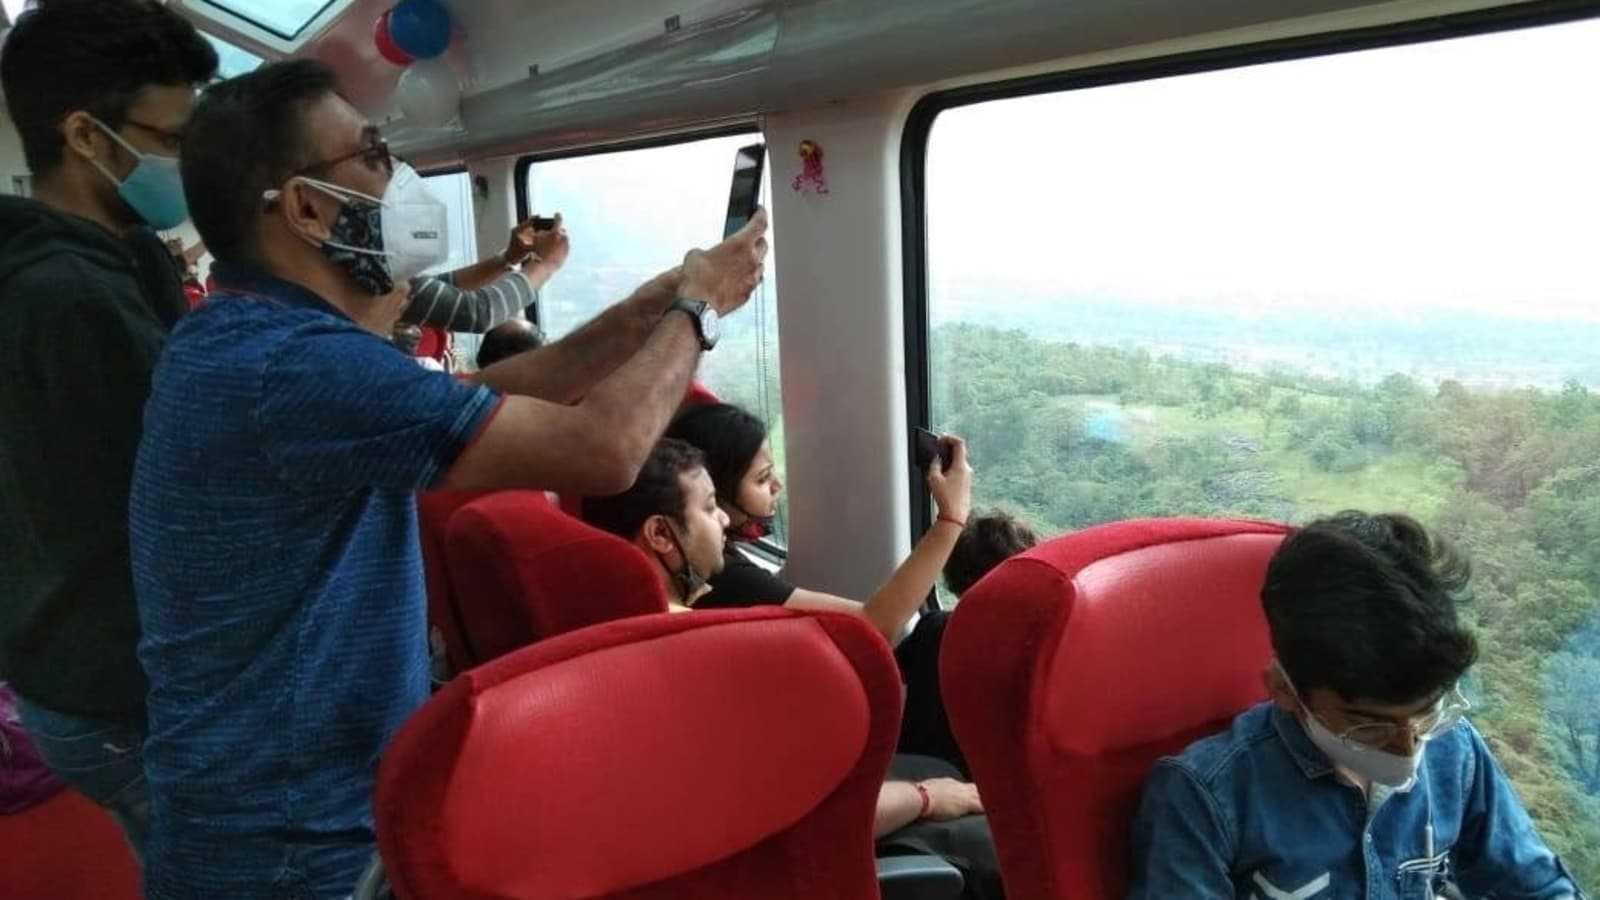 Video shows incredible view of Western Ghats from Vistadome coach in Mumbai-Pune  Deccan Express | Trending - Hindustan Times